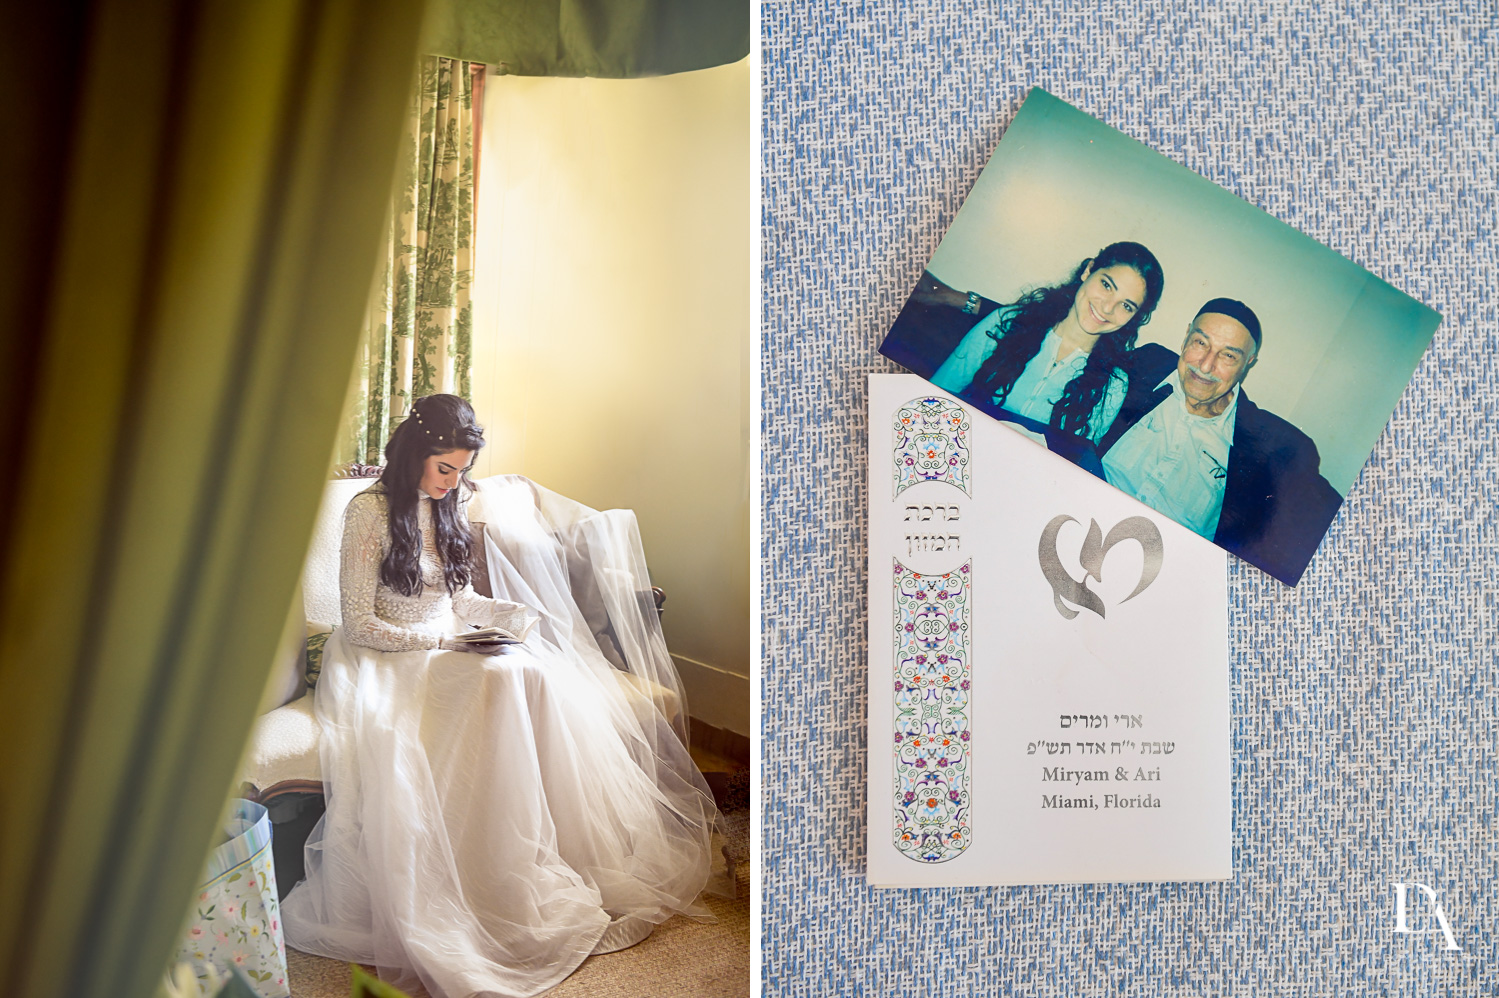 bride details at Traditional Jewish Wedding at Deering Estate Miami by Domino Arts Photography